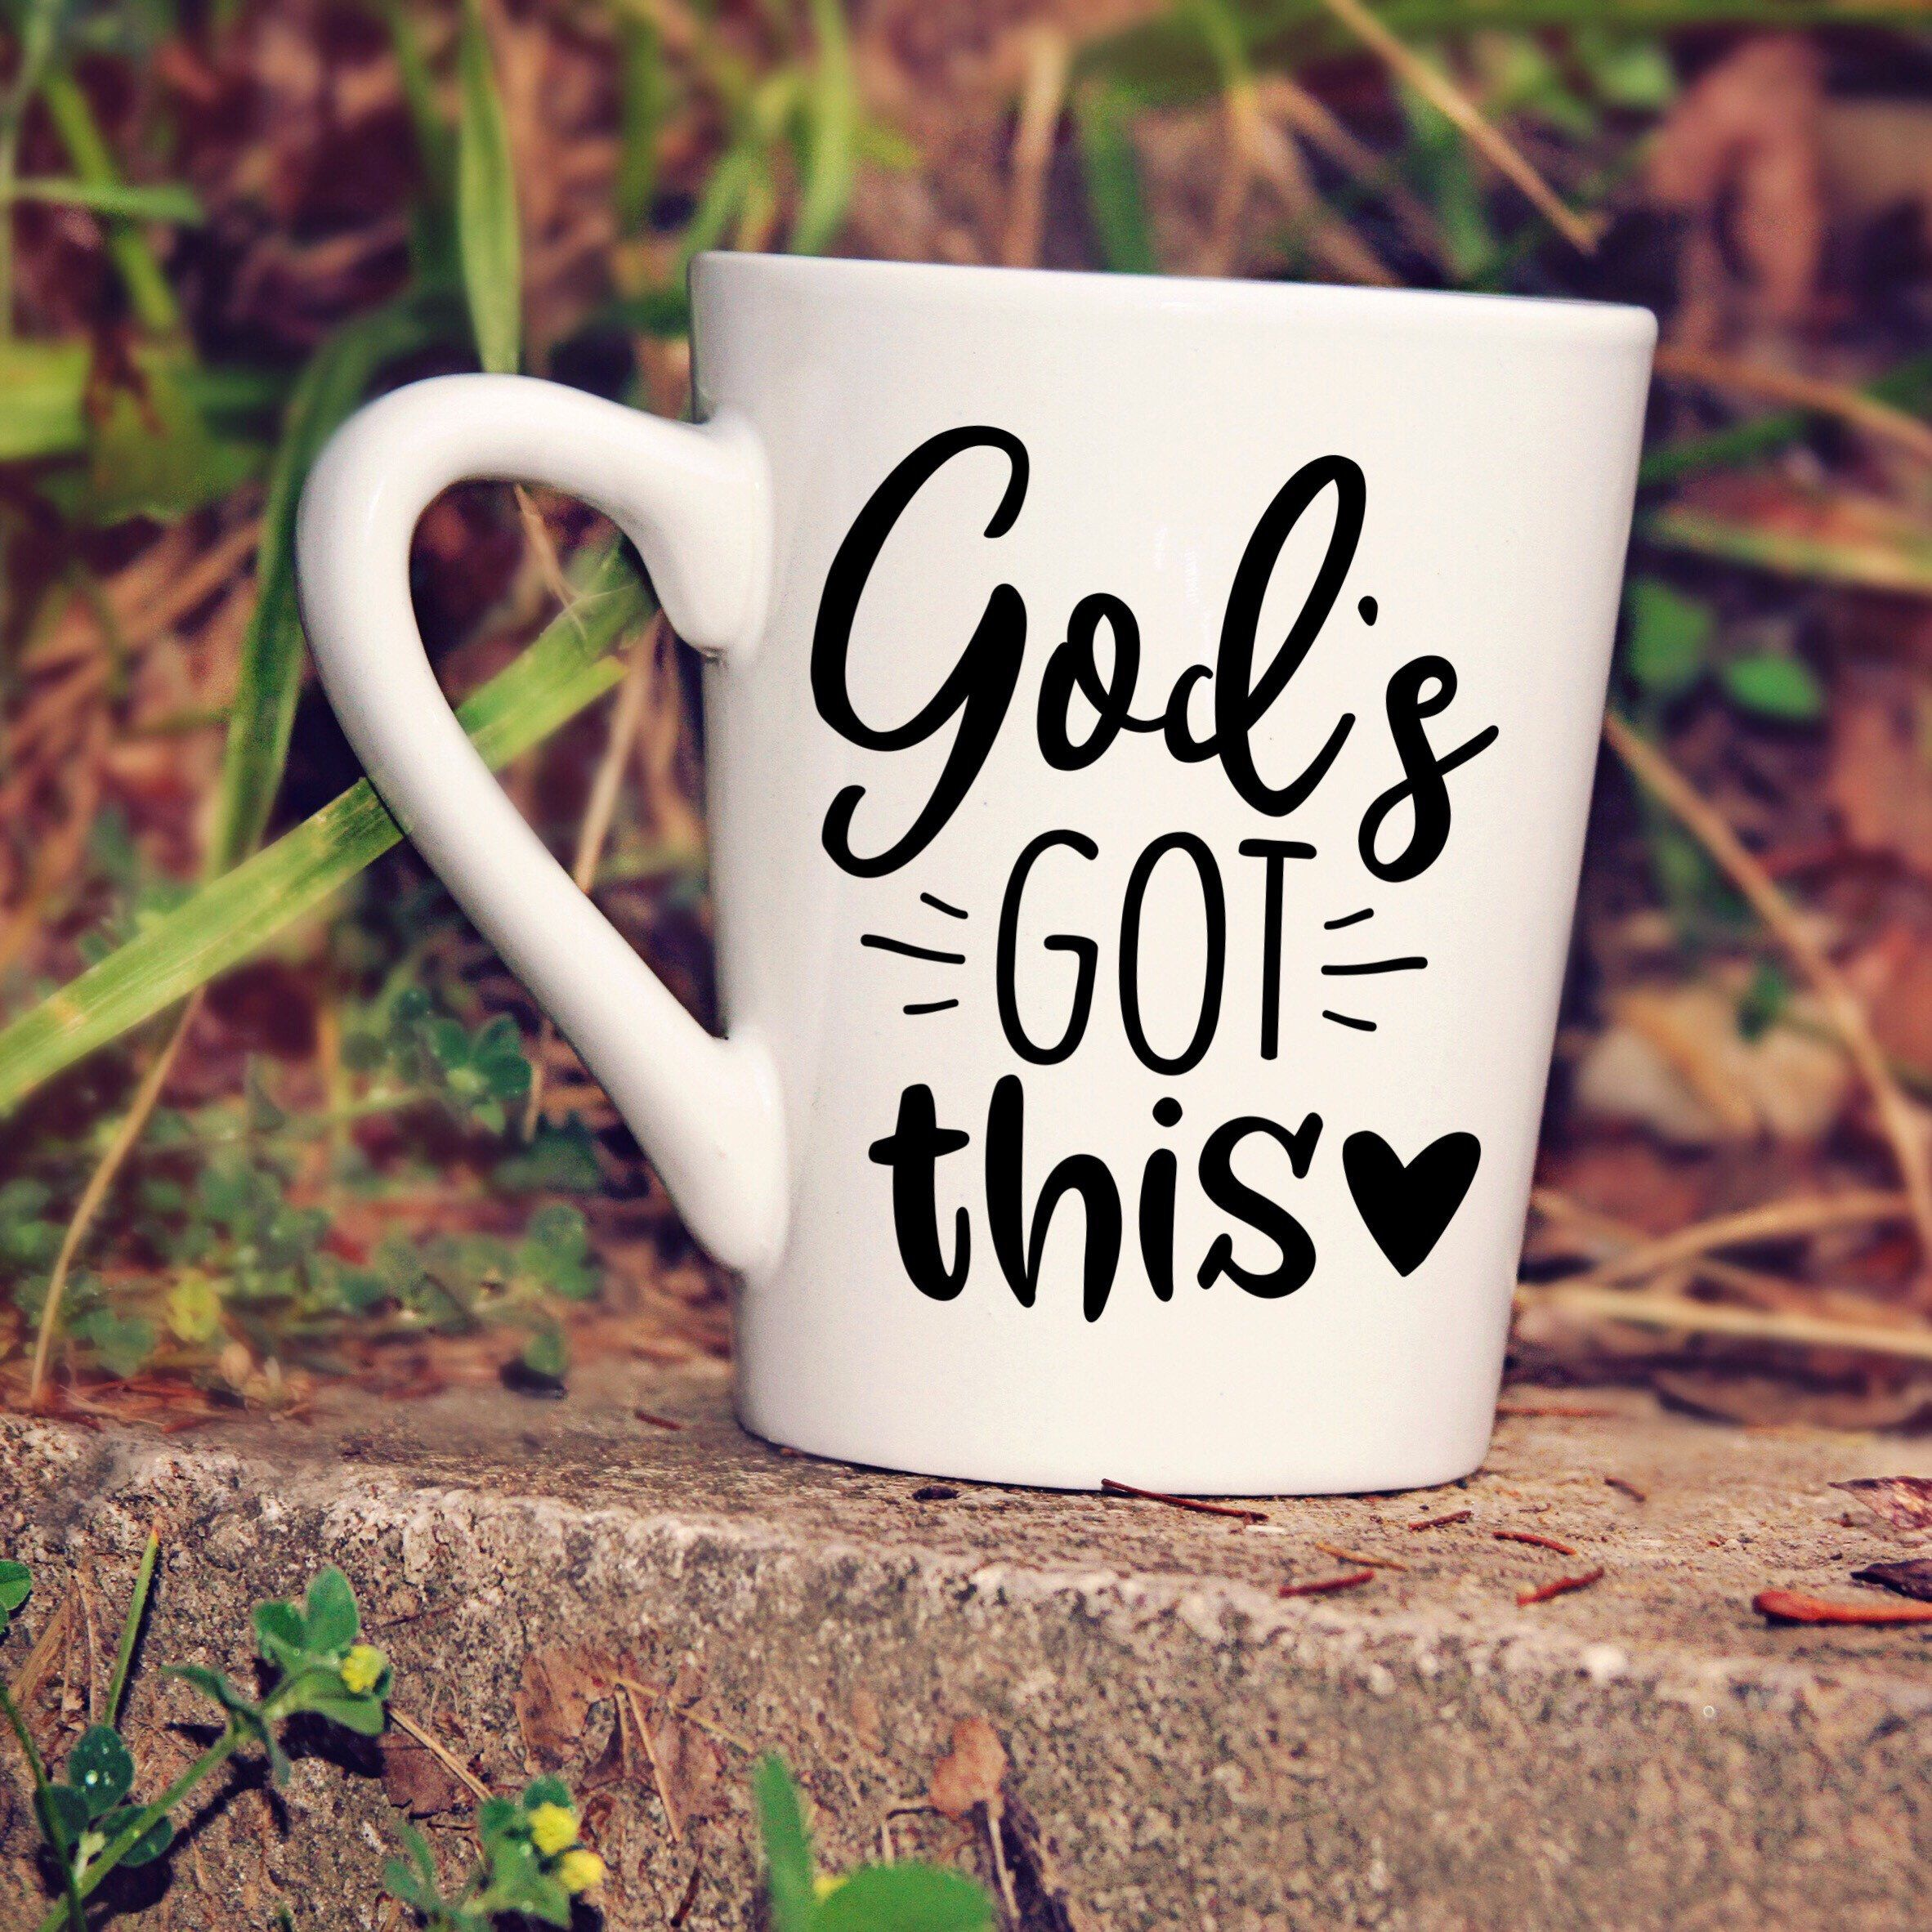 Decal God's got this Etsy Coffee decal, Nope funny